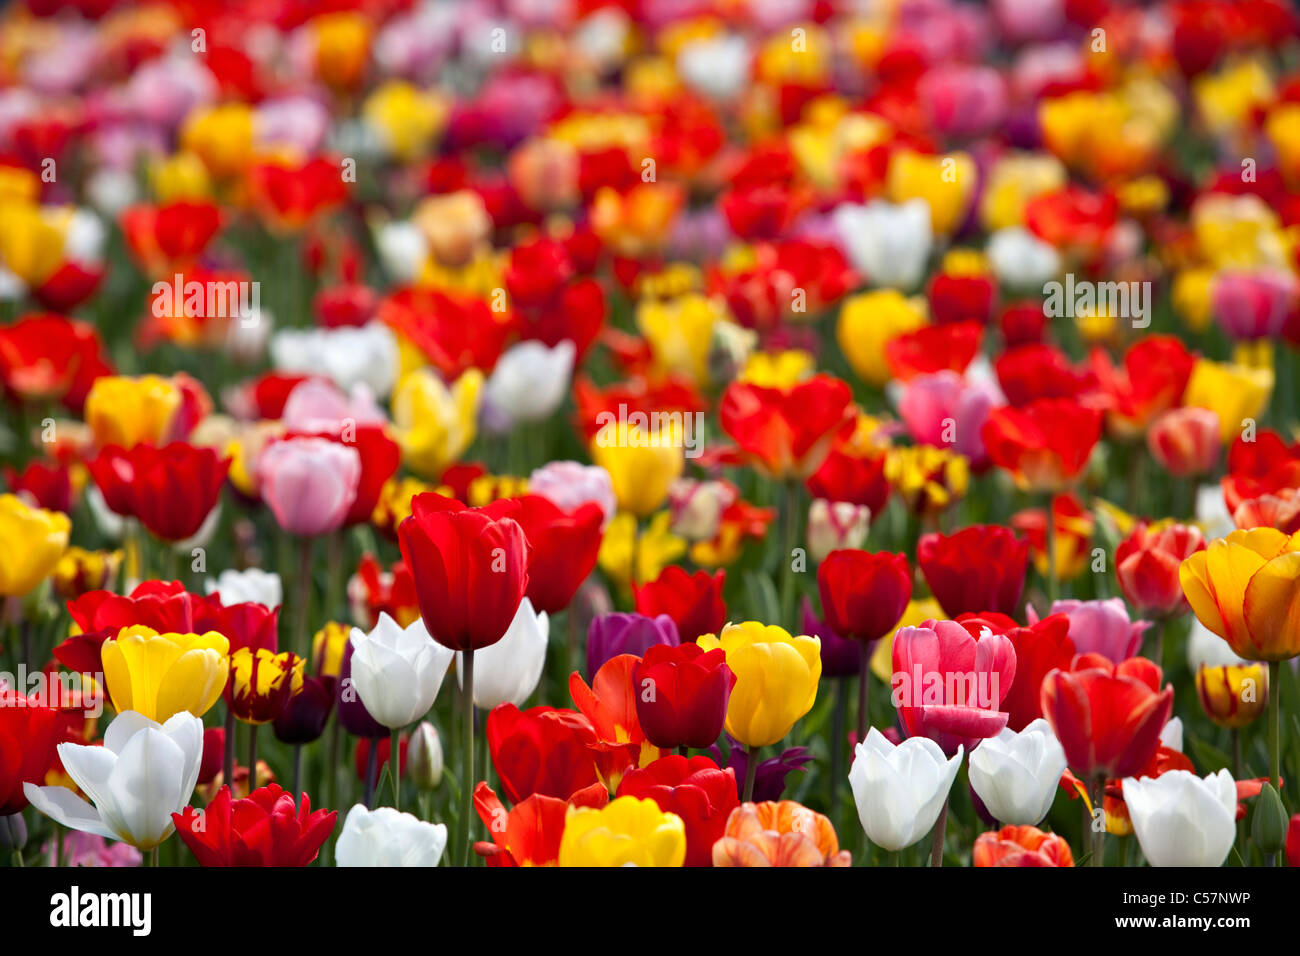 The Netherlands, Lisse, Tulip flowers. - Stock Image